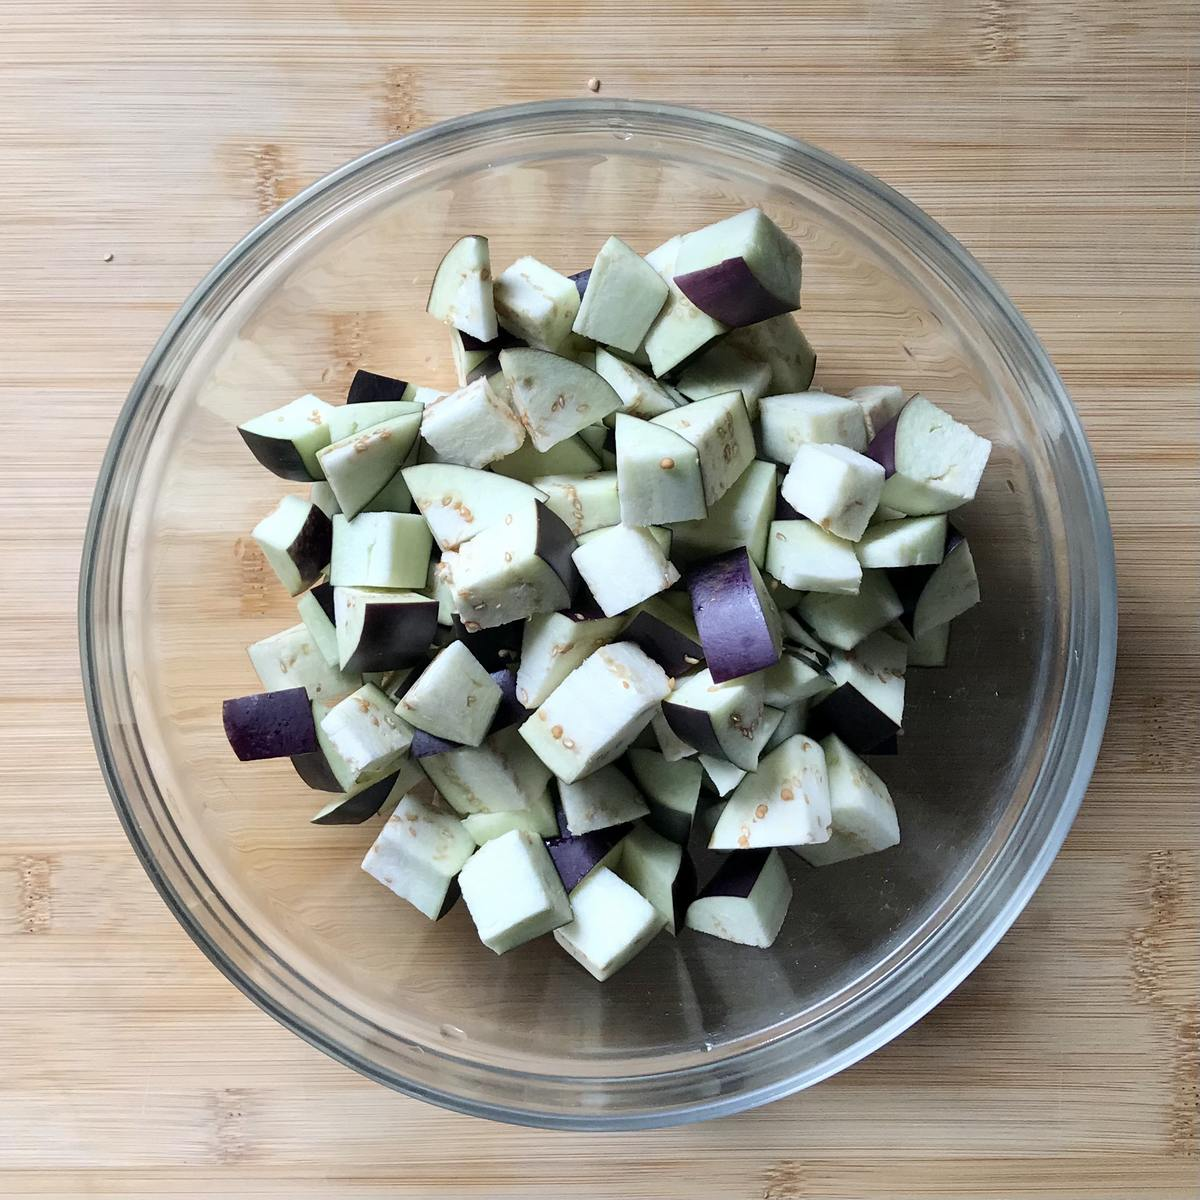 Diced eggplant in a bowl.